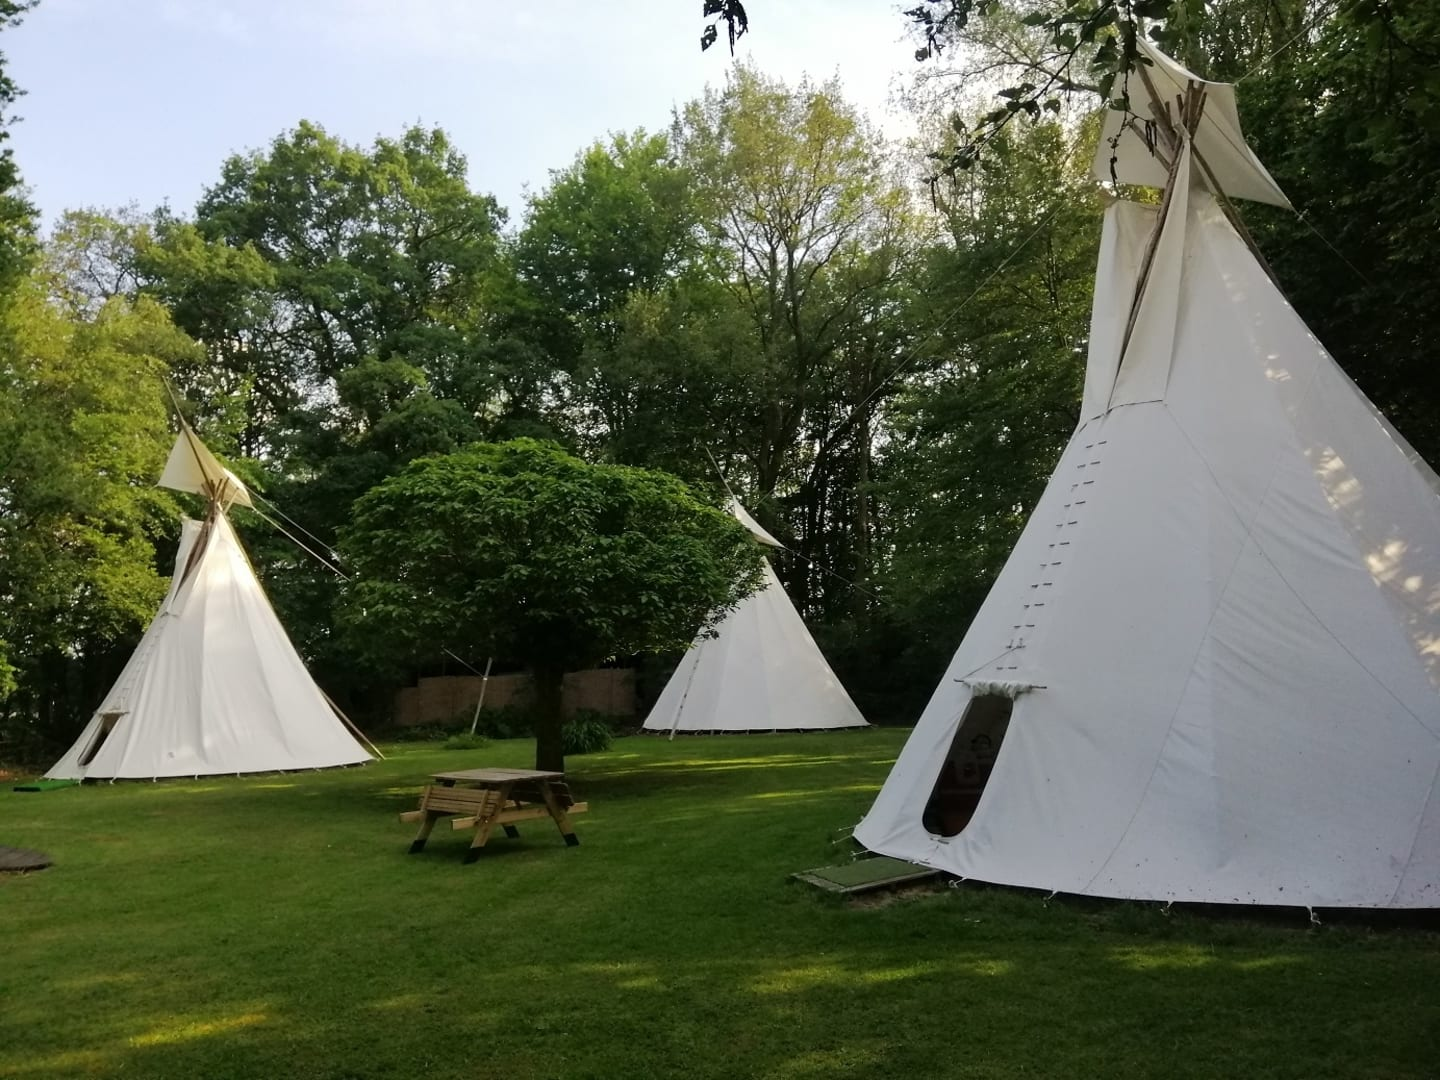 Campspace tipi